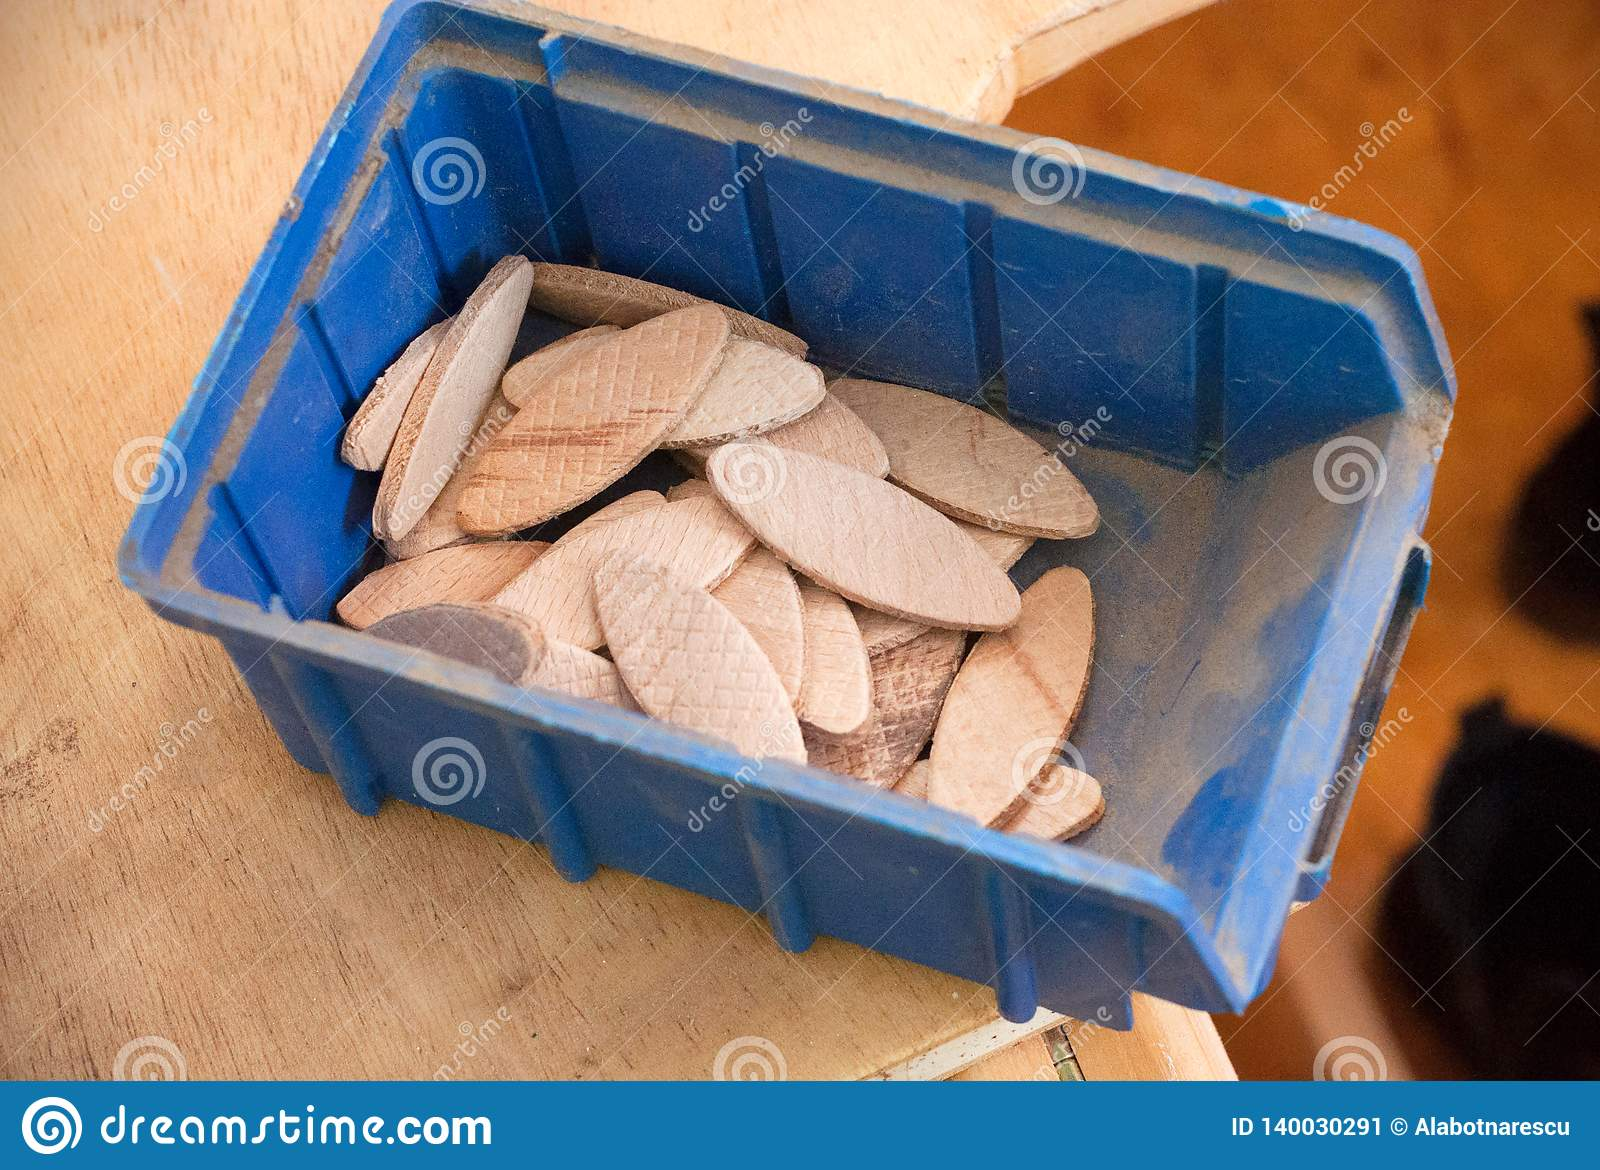 Compressed beech wood biscuit in a blue plastic container